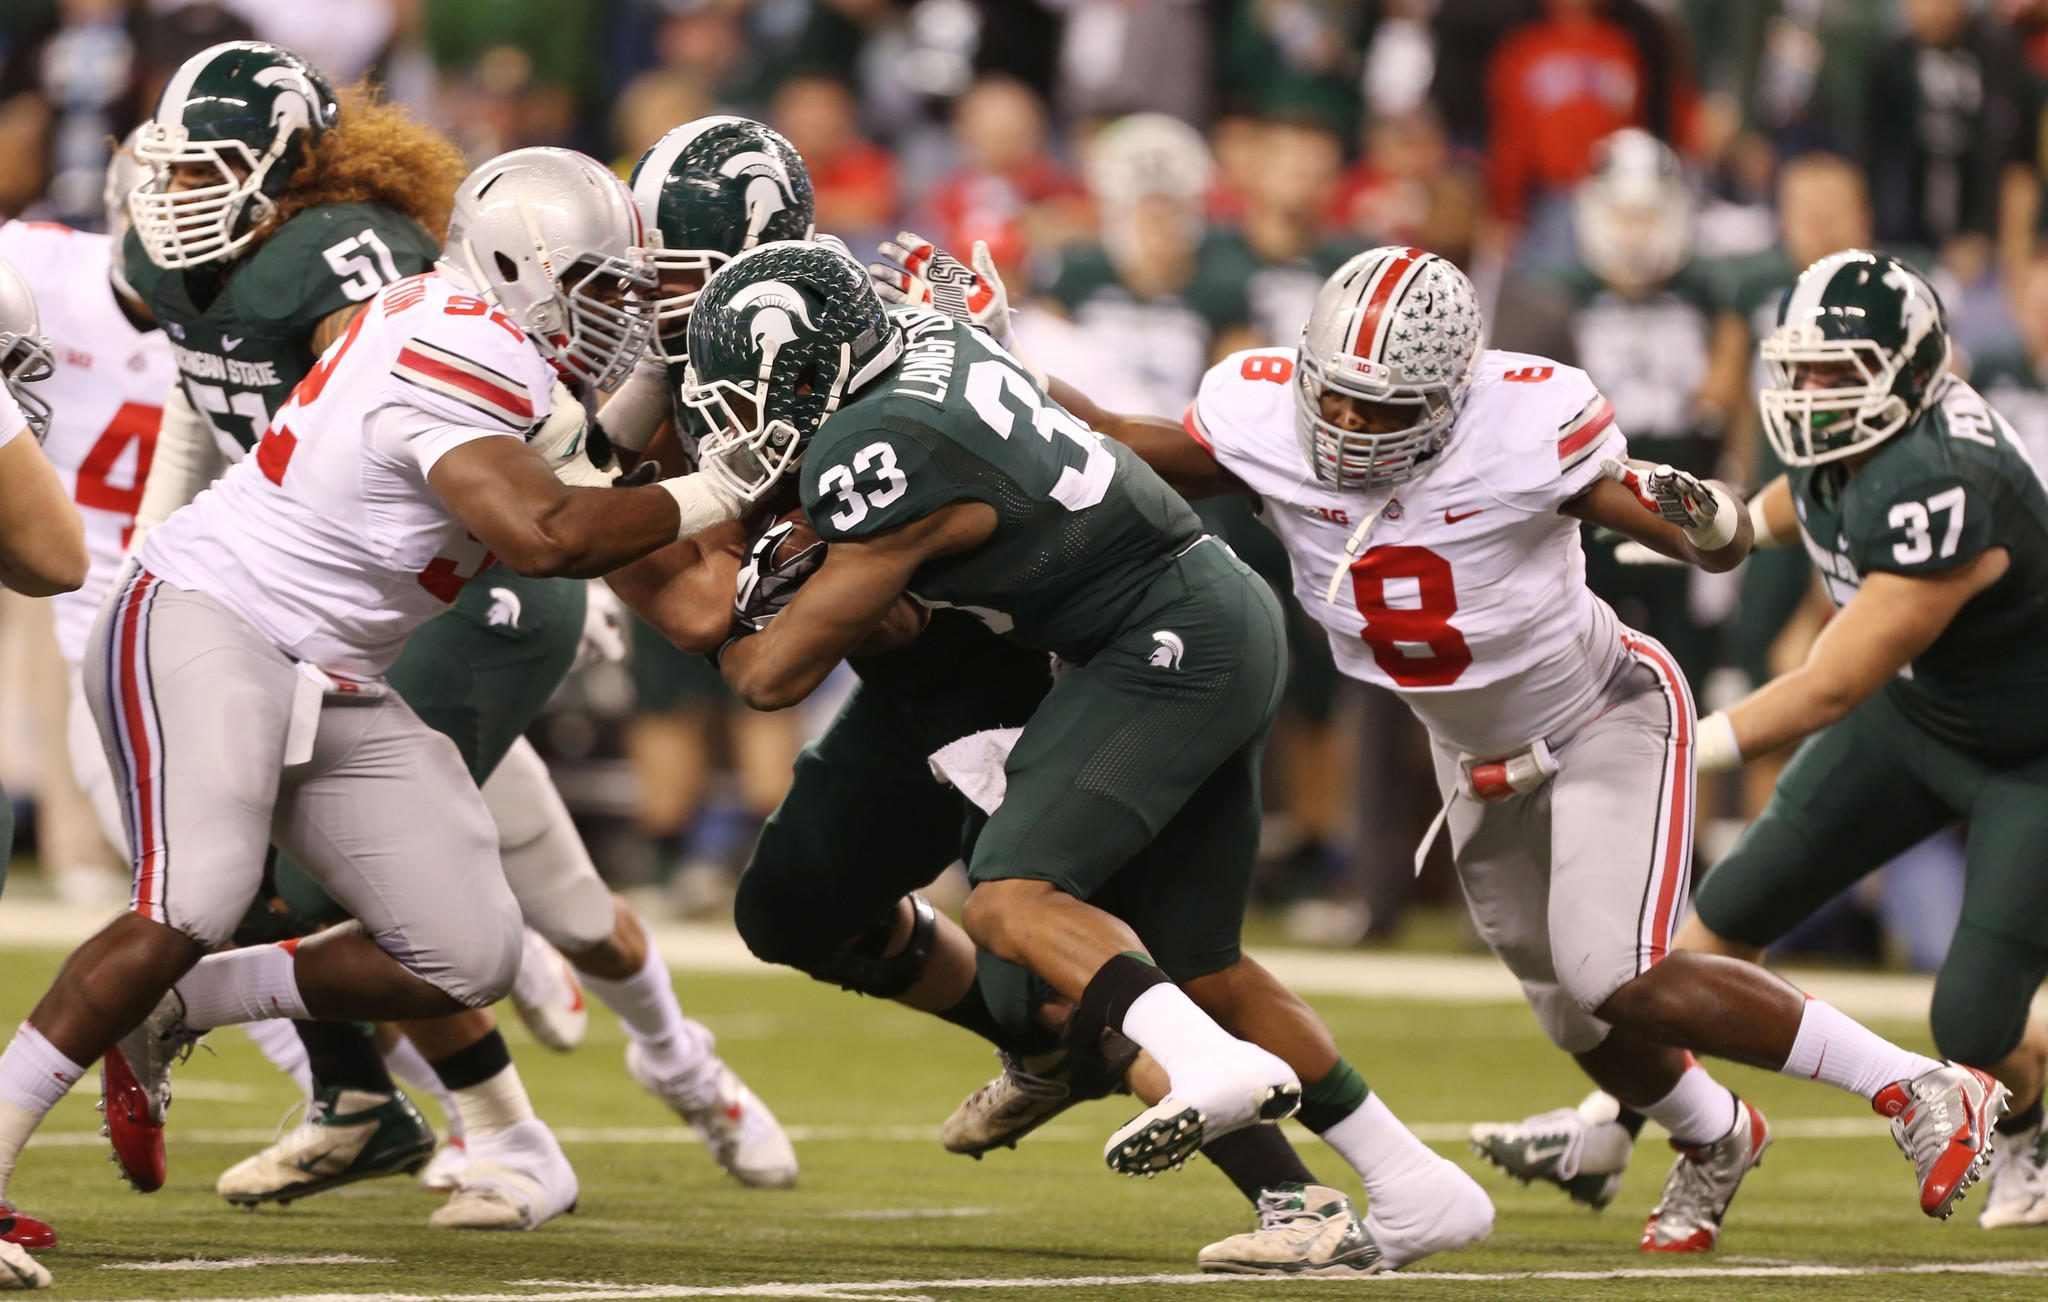 Michigan State running back Jeremy Langford (33) is tackled by Ohio State Buckeyes defensive linemen Noah Spence (8) and Adolphus Washington (92) during the Big Ten Championship game.